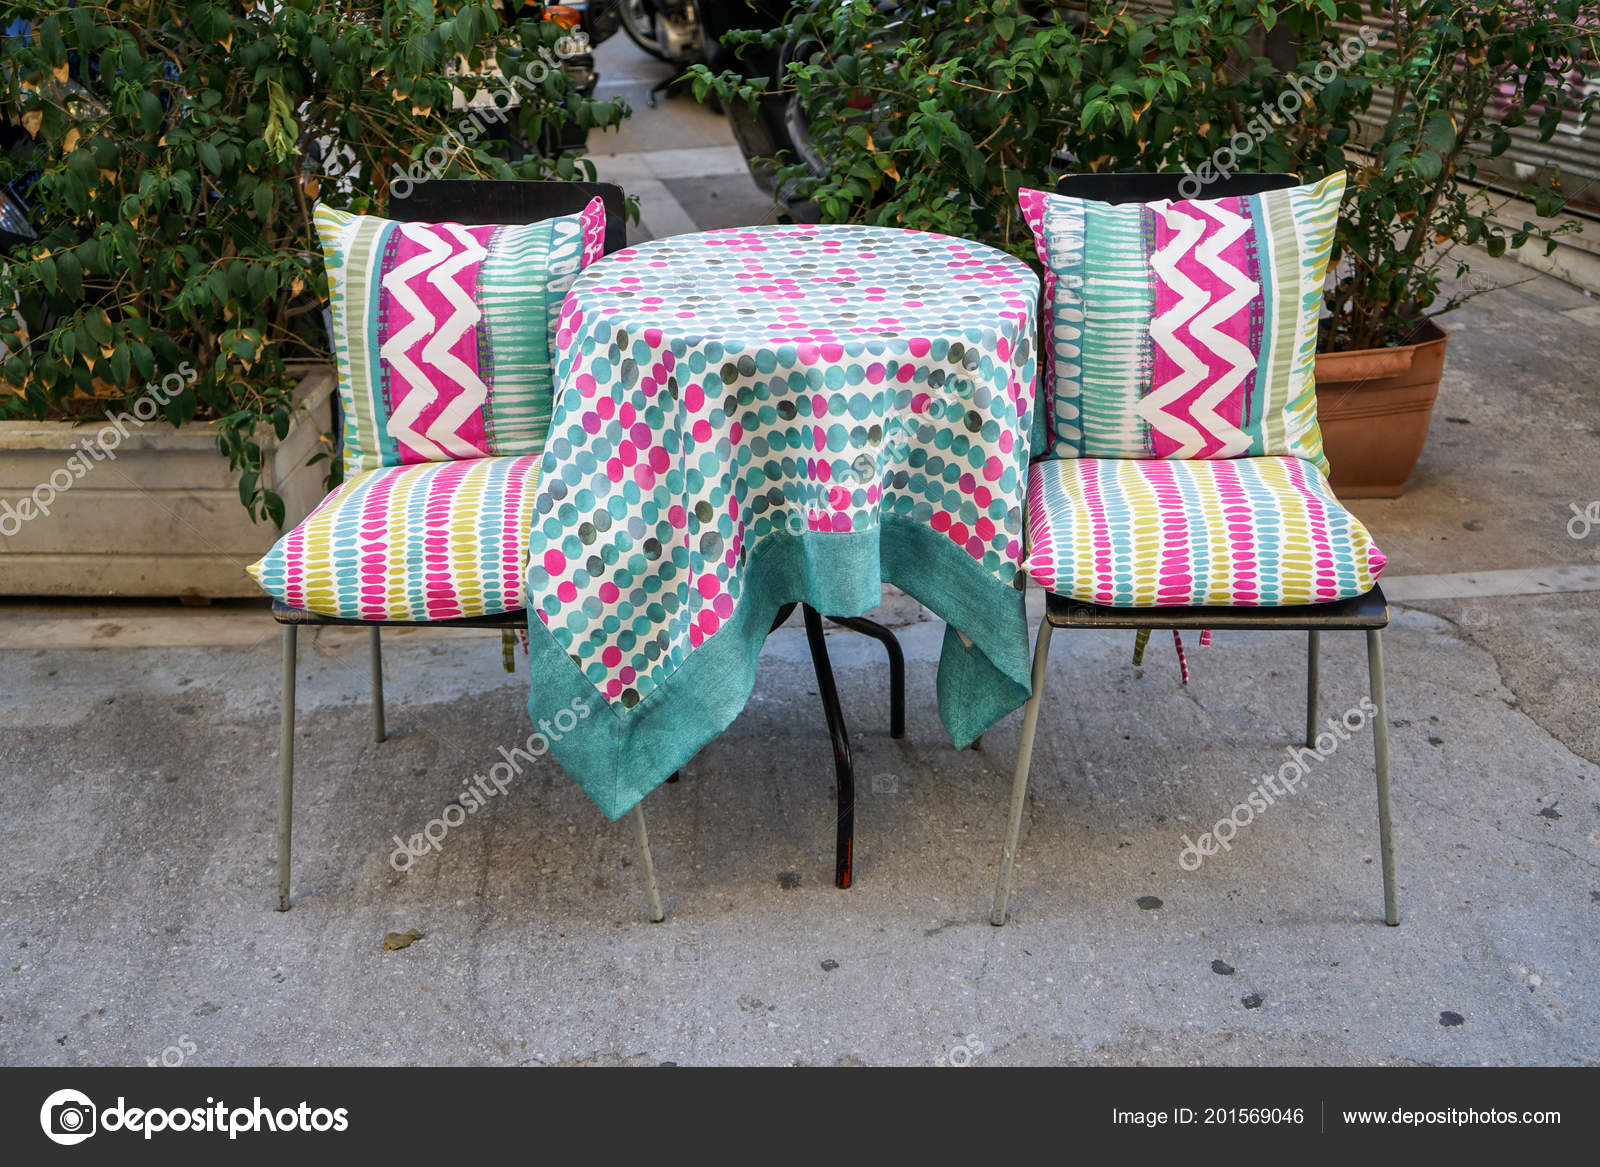 Outdoor furniture round table and chairs with colorful pattern fabric table cloth on concrete floor with green plant pot background athens greece photo